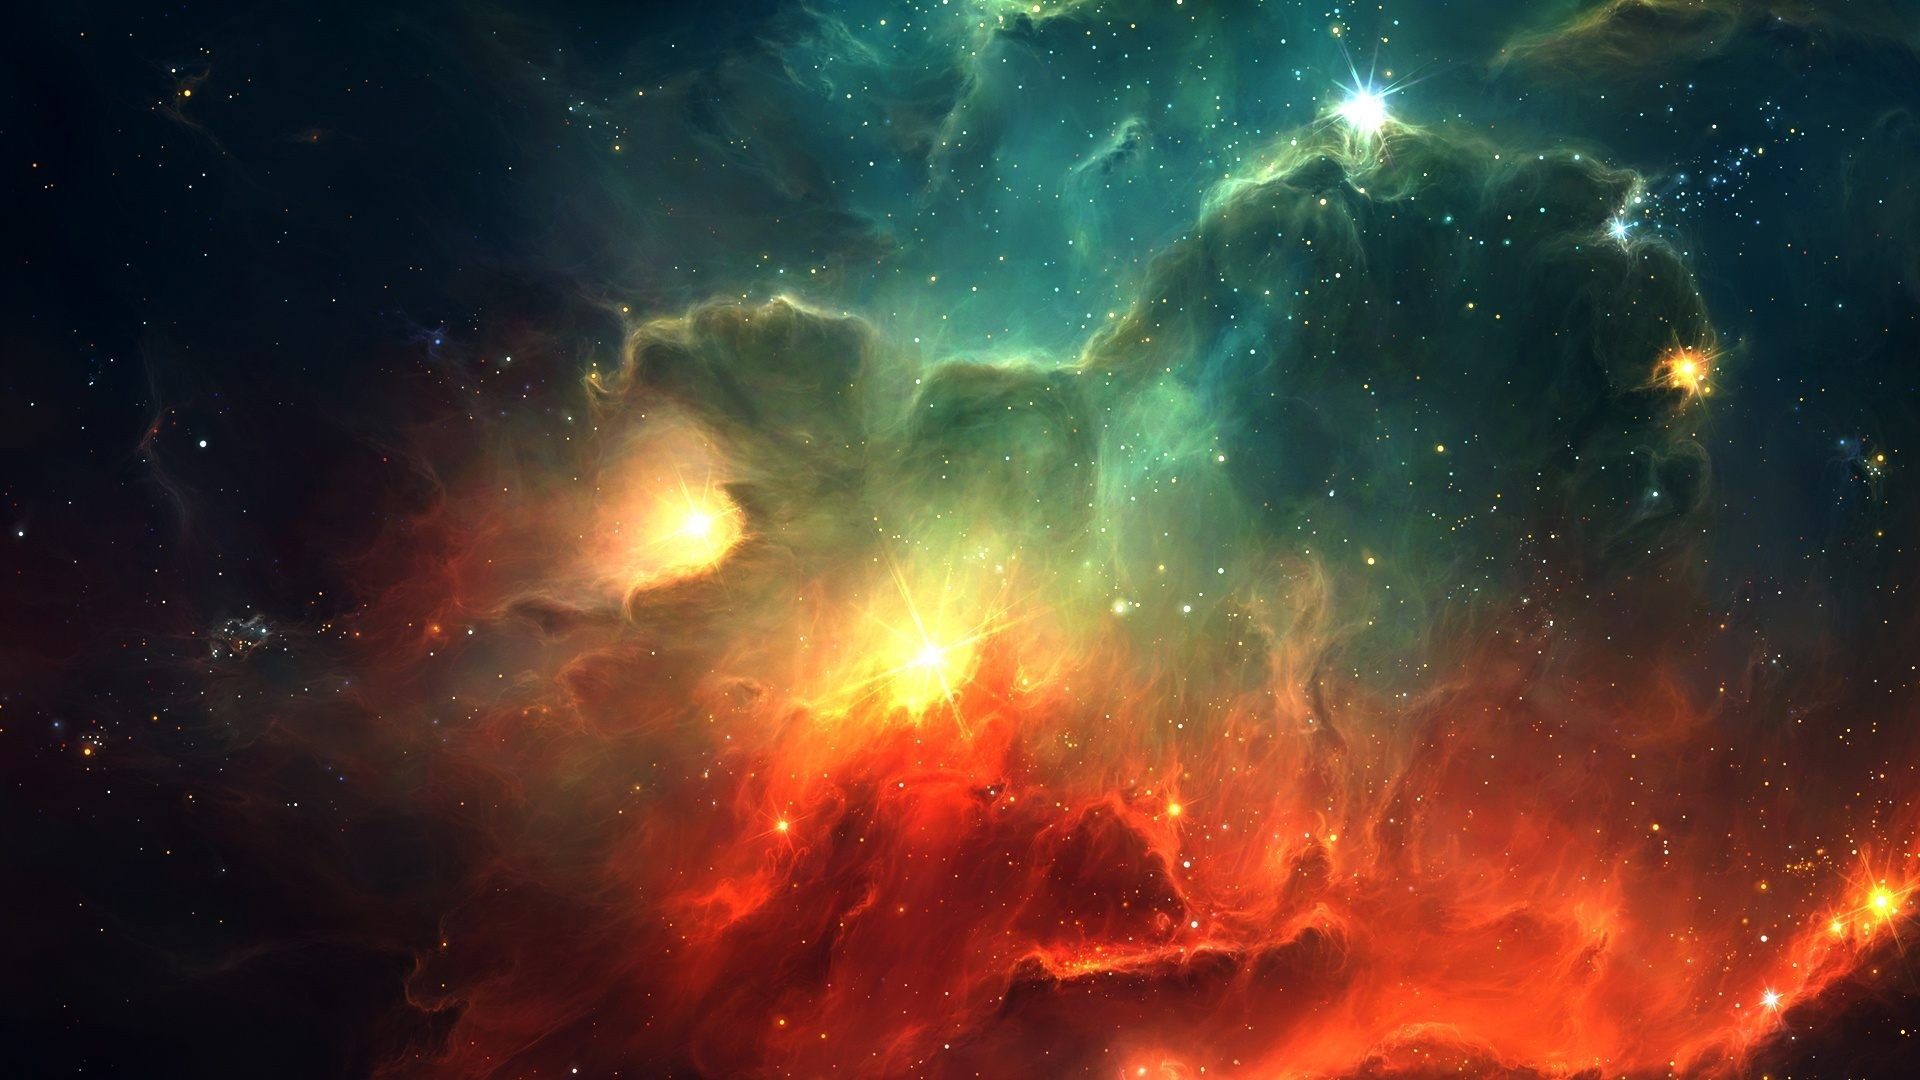 universe wallpaper ·① download free cool high resolution